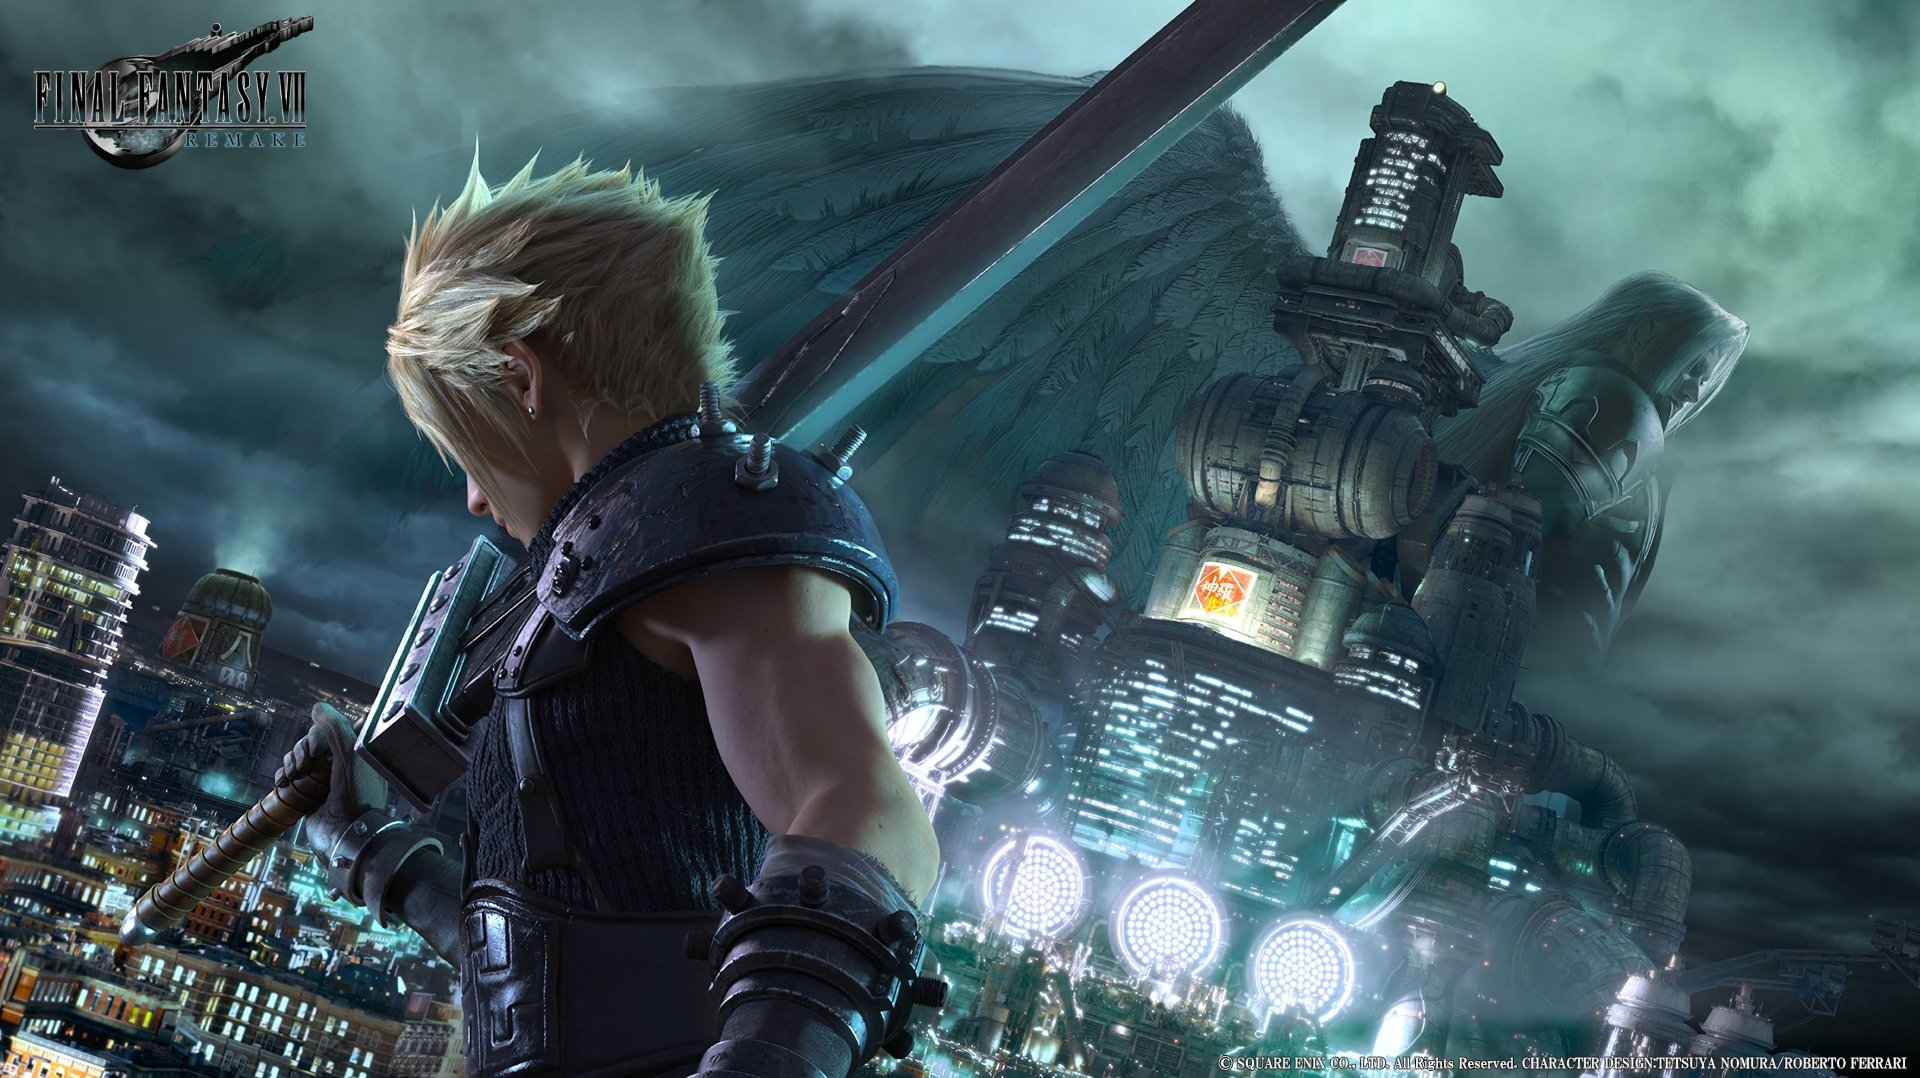 52 Final Fantasy Vii Remake Hd Wallpapers Background Images